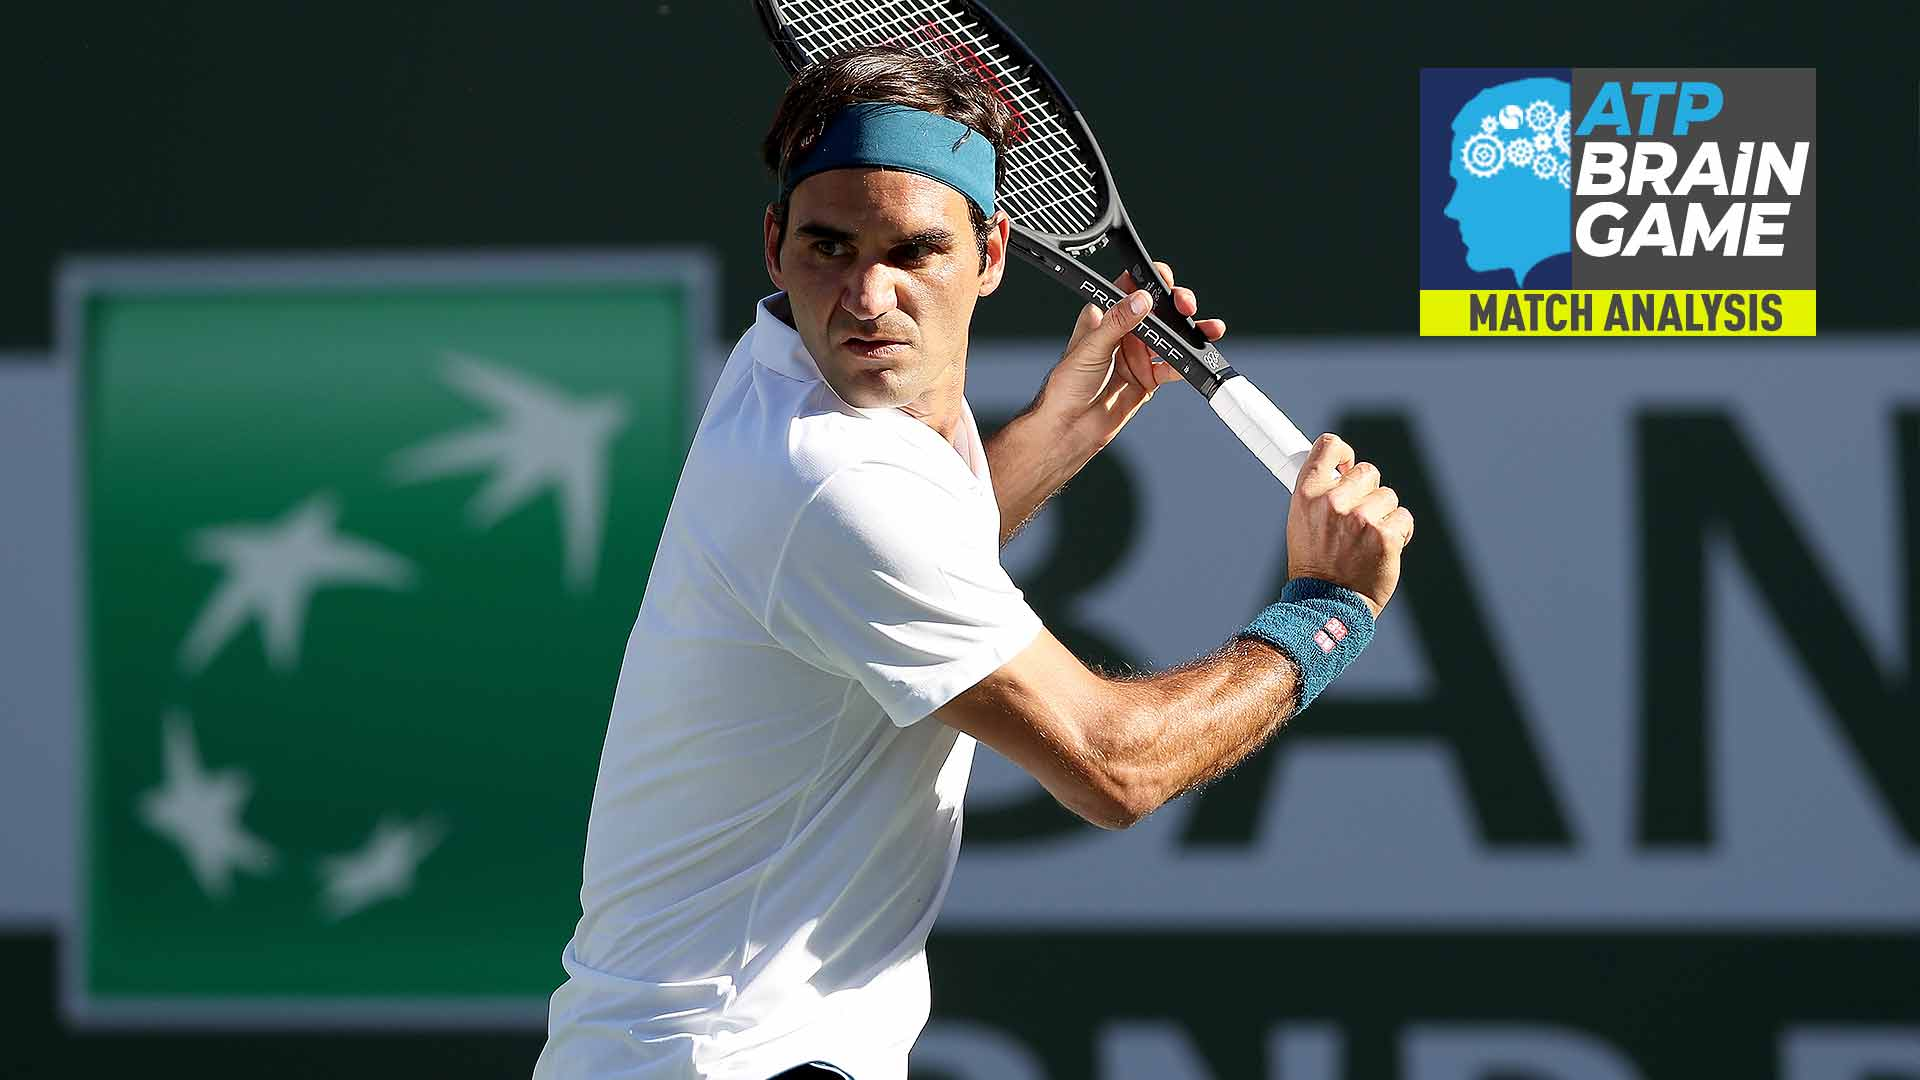 Roger Federer's backhand lets him down in the Indian Wells final